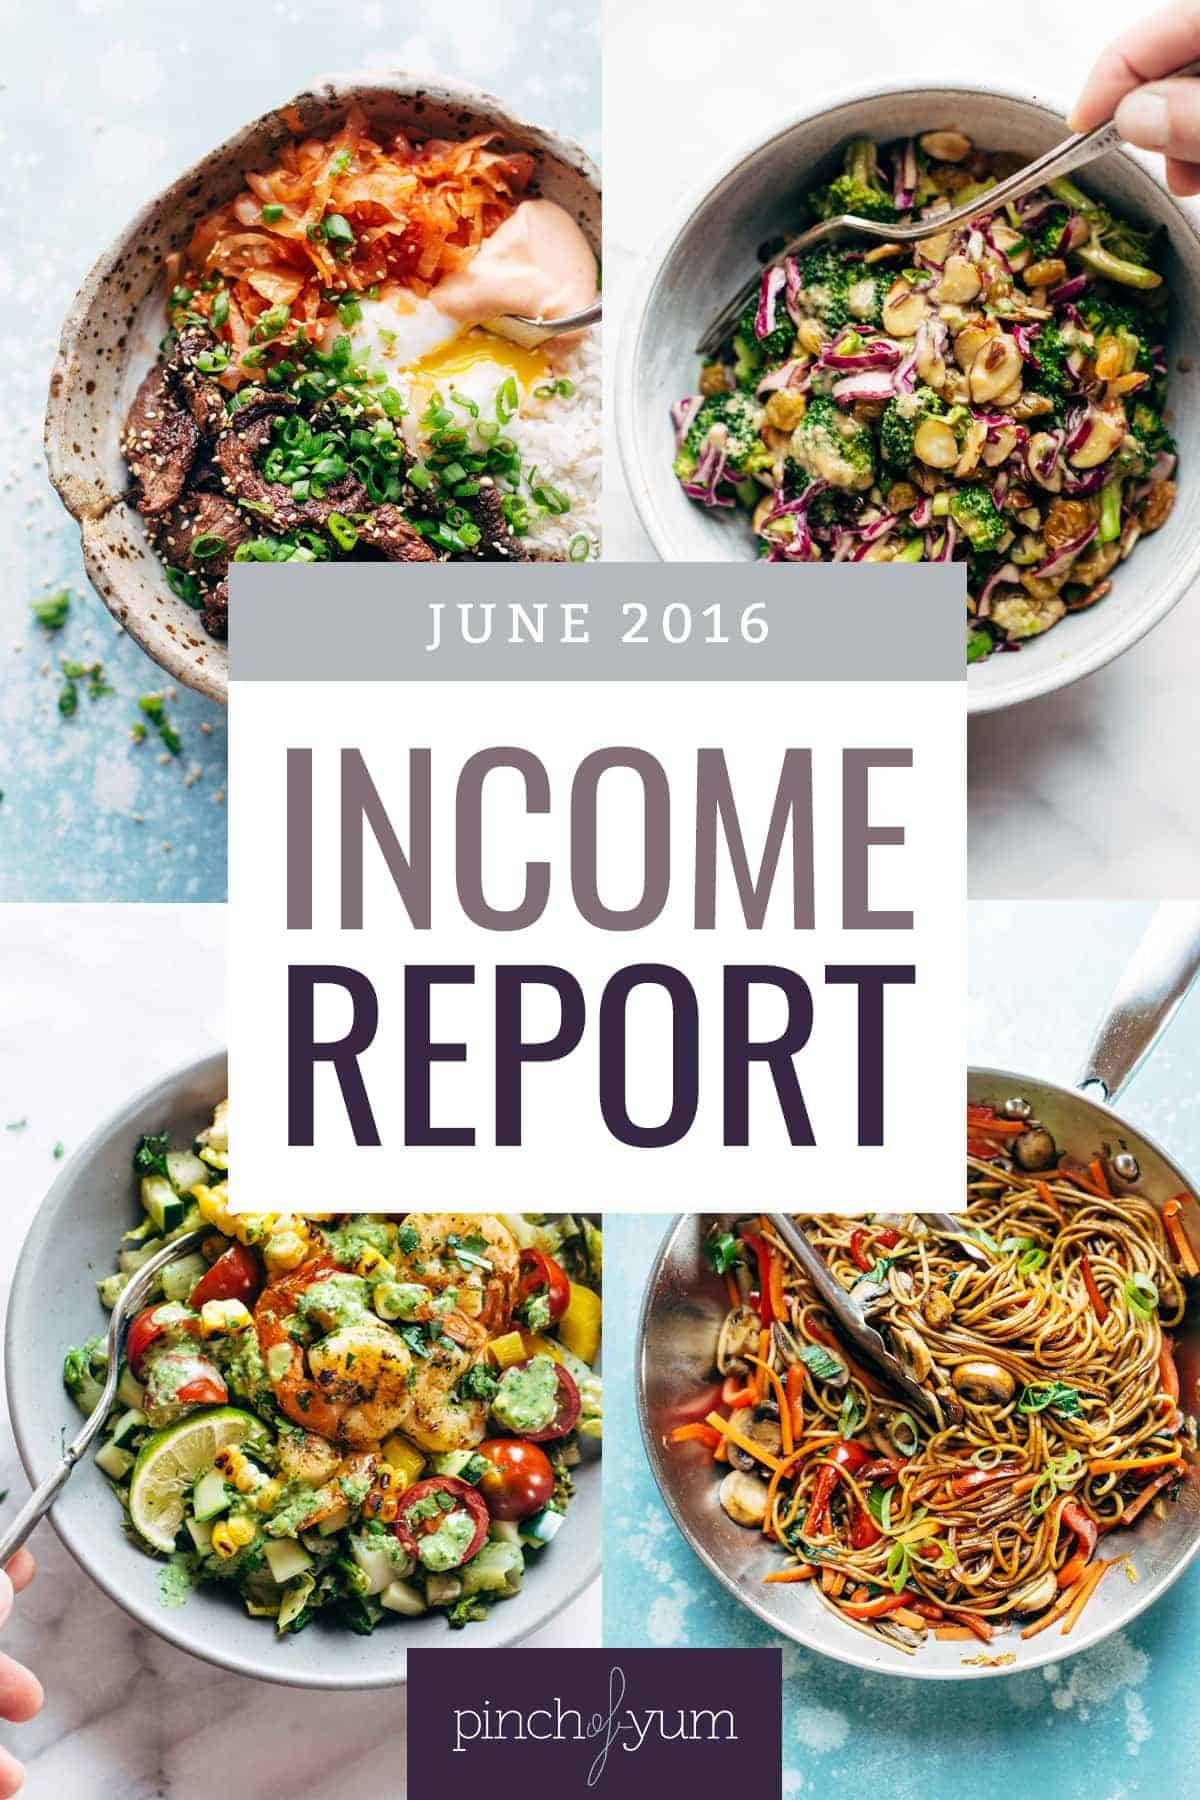 Traffic and Income Report for June 2016 collage.